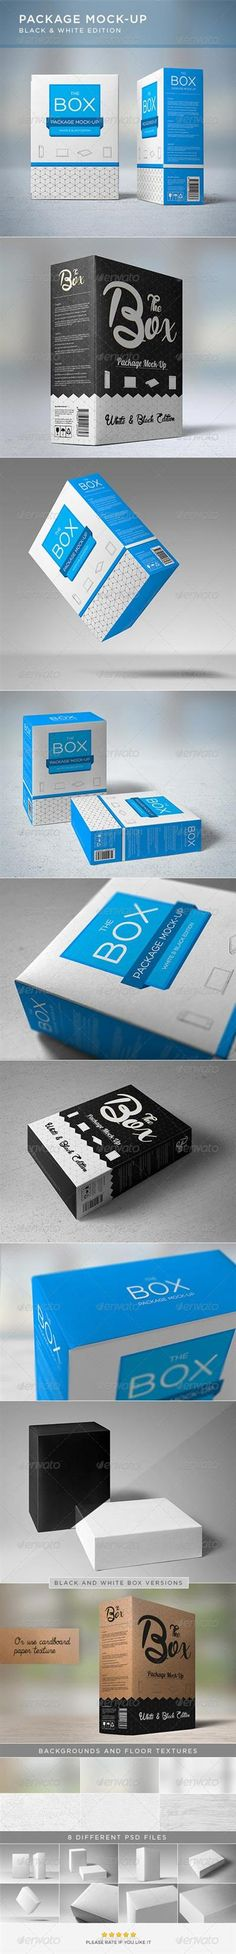 Package Mock-Up – GraphicRiver » Free Hero Graphic Design: Special GFX Posts Vectors AEP Projects PSD Sources Web Templates 3D Stock Images | HeroGFX.com